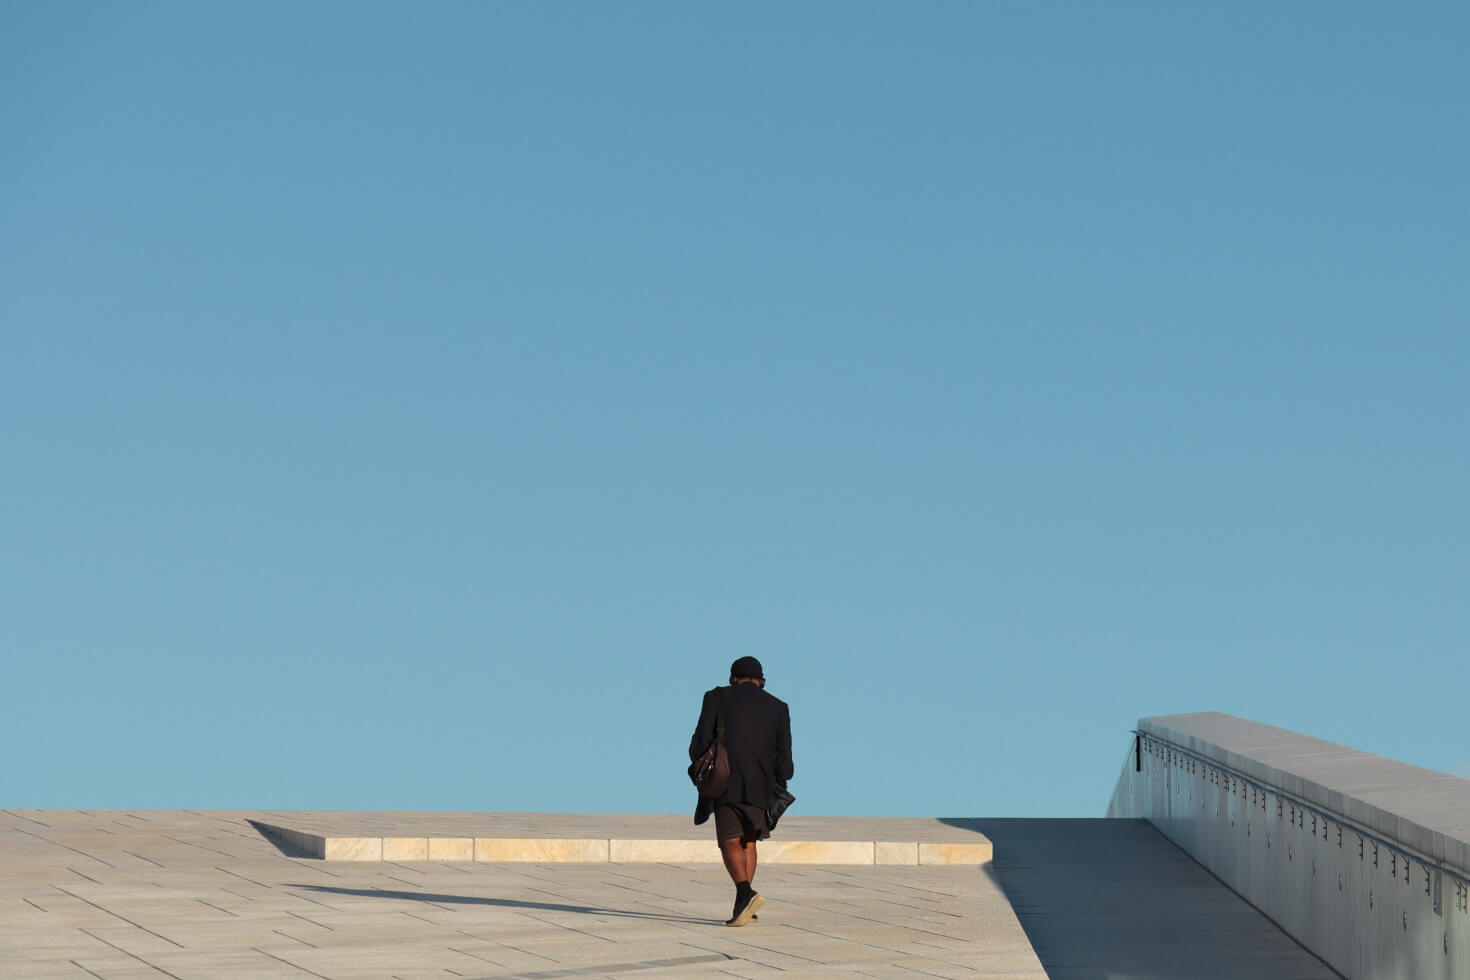 Man walking alone outside